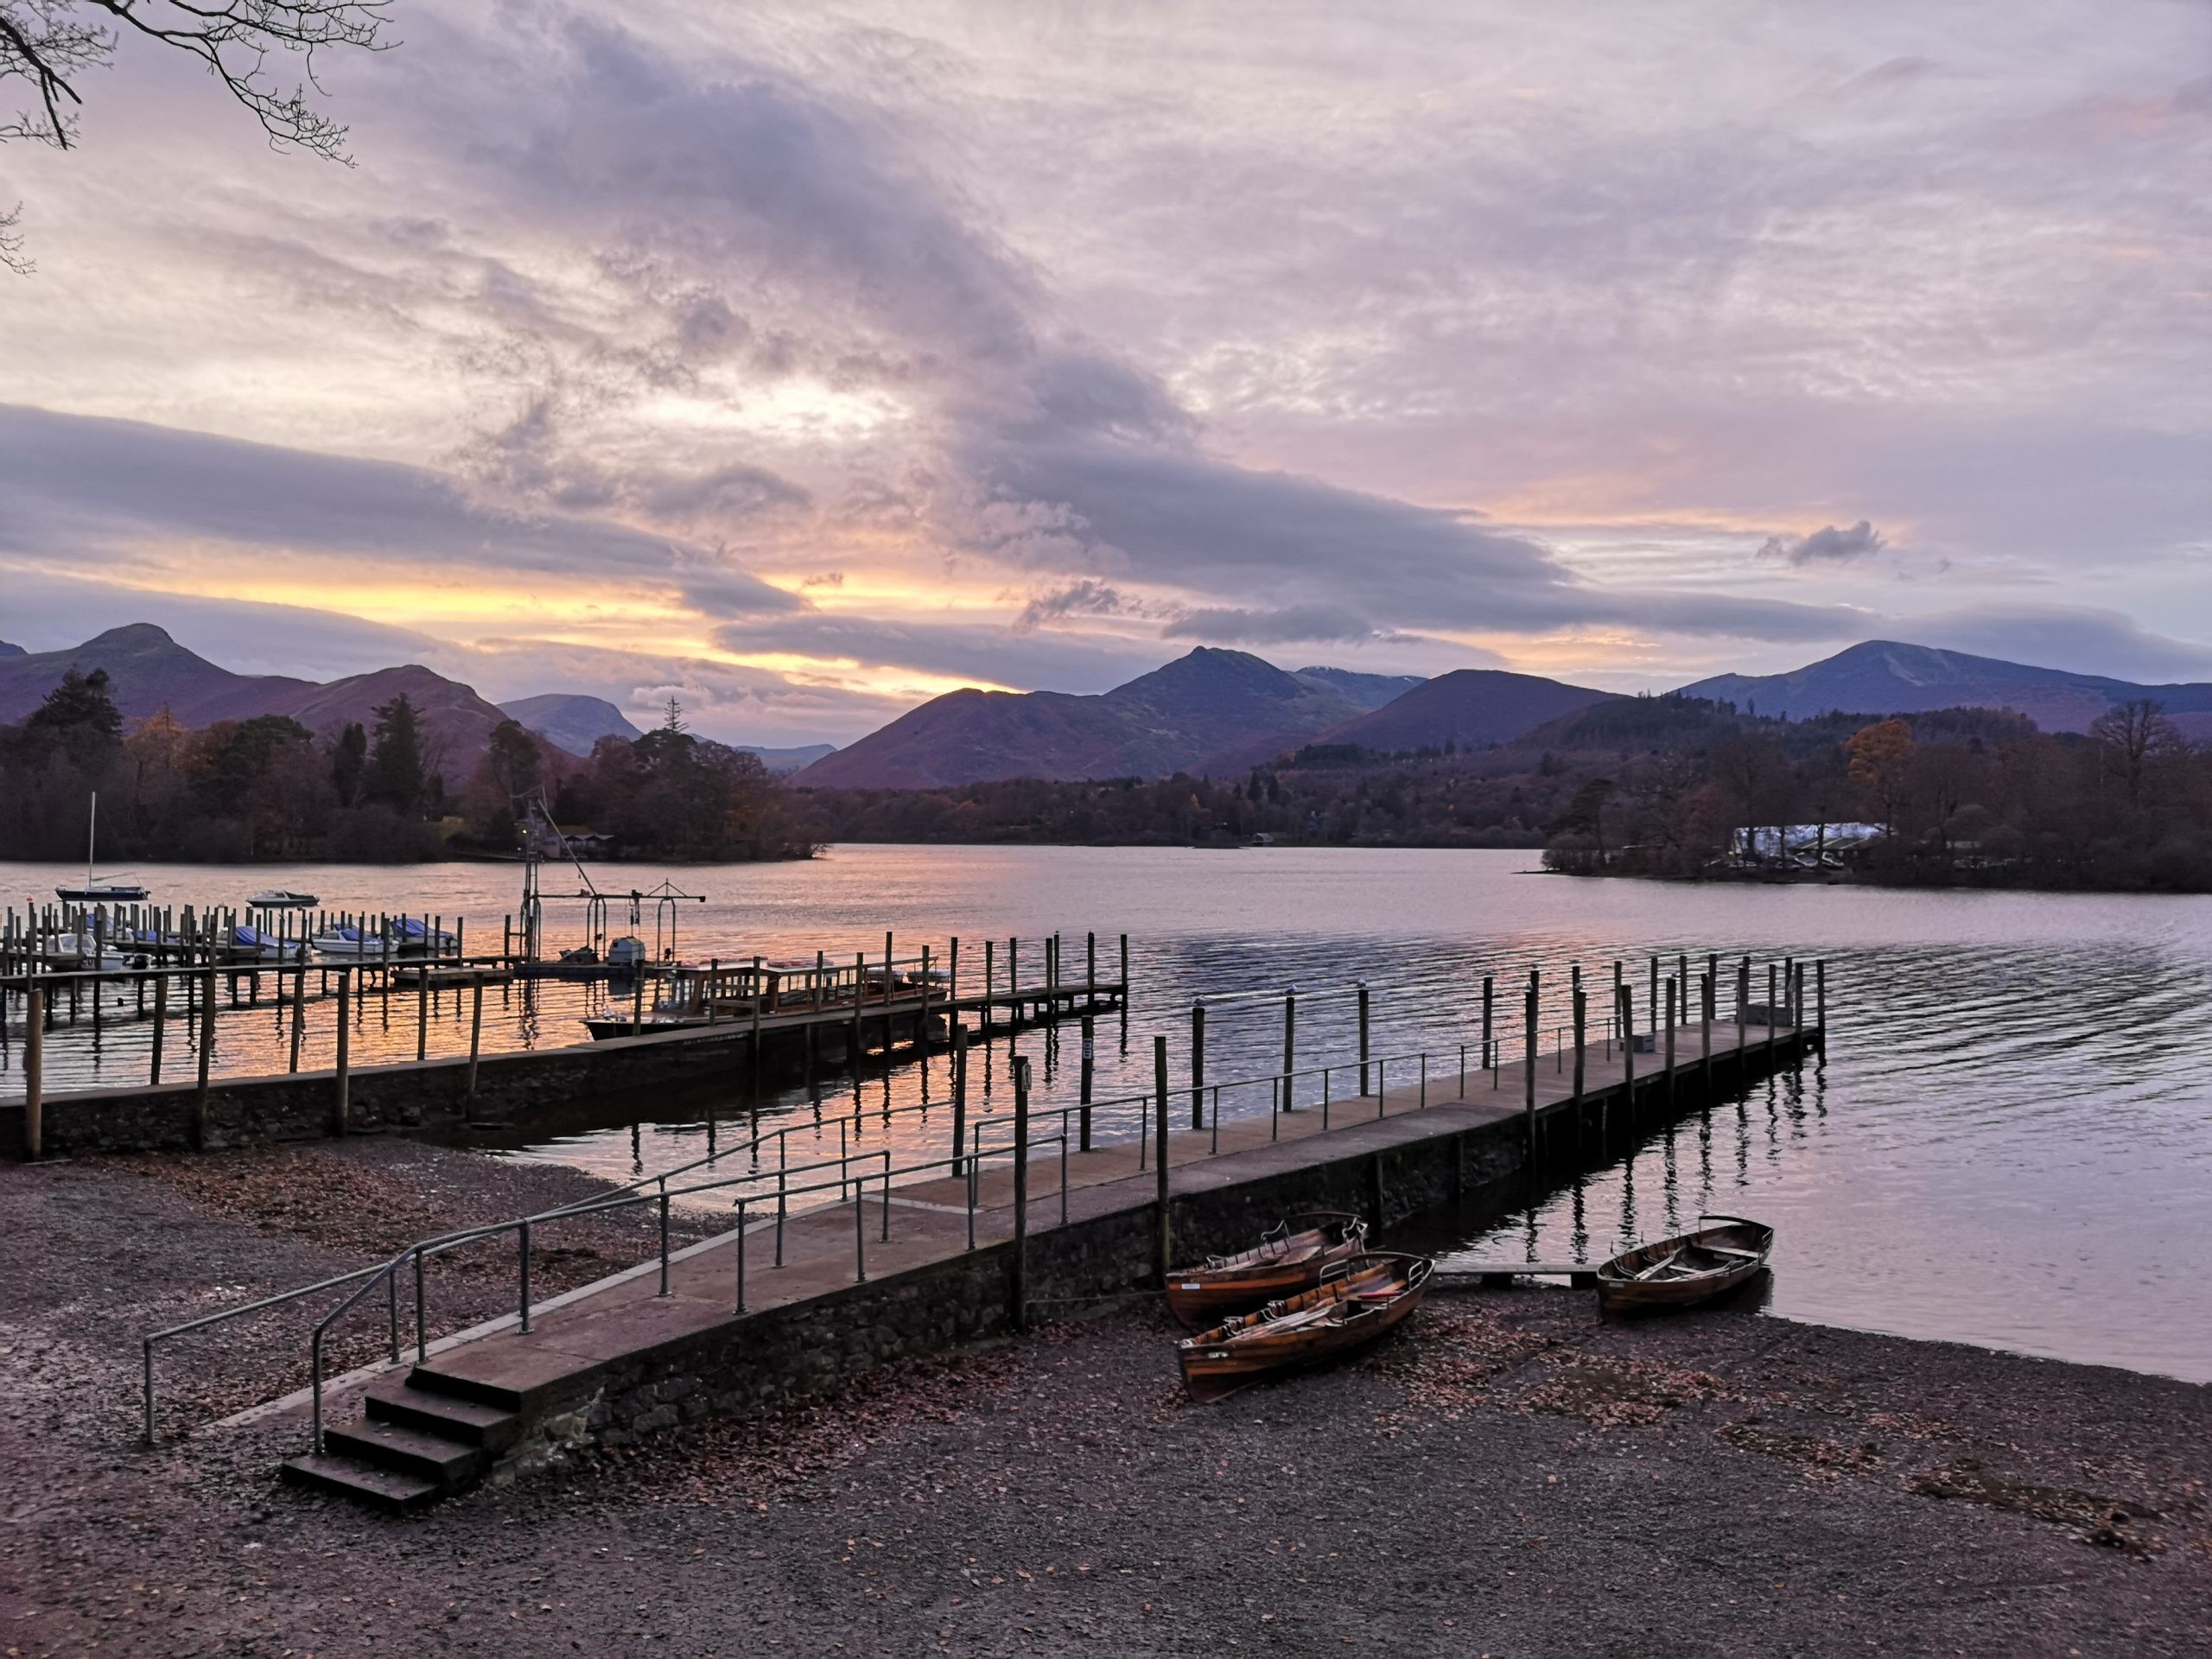 Derwentwater jetties at dusk